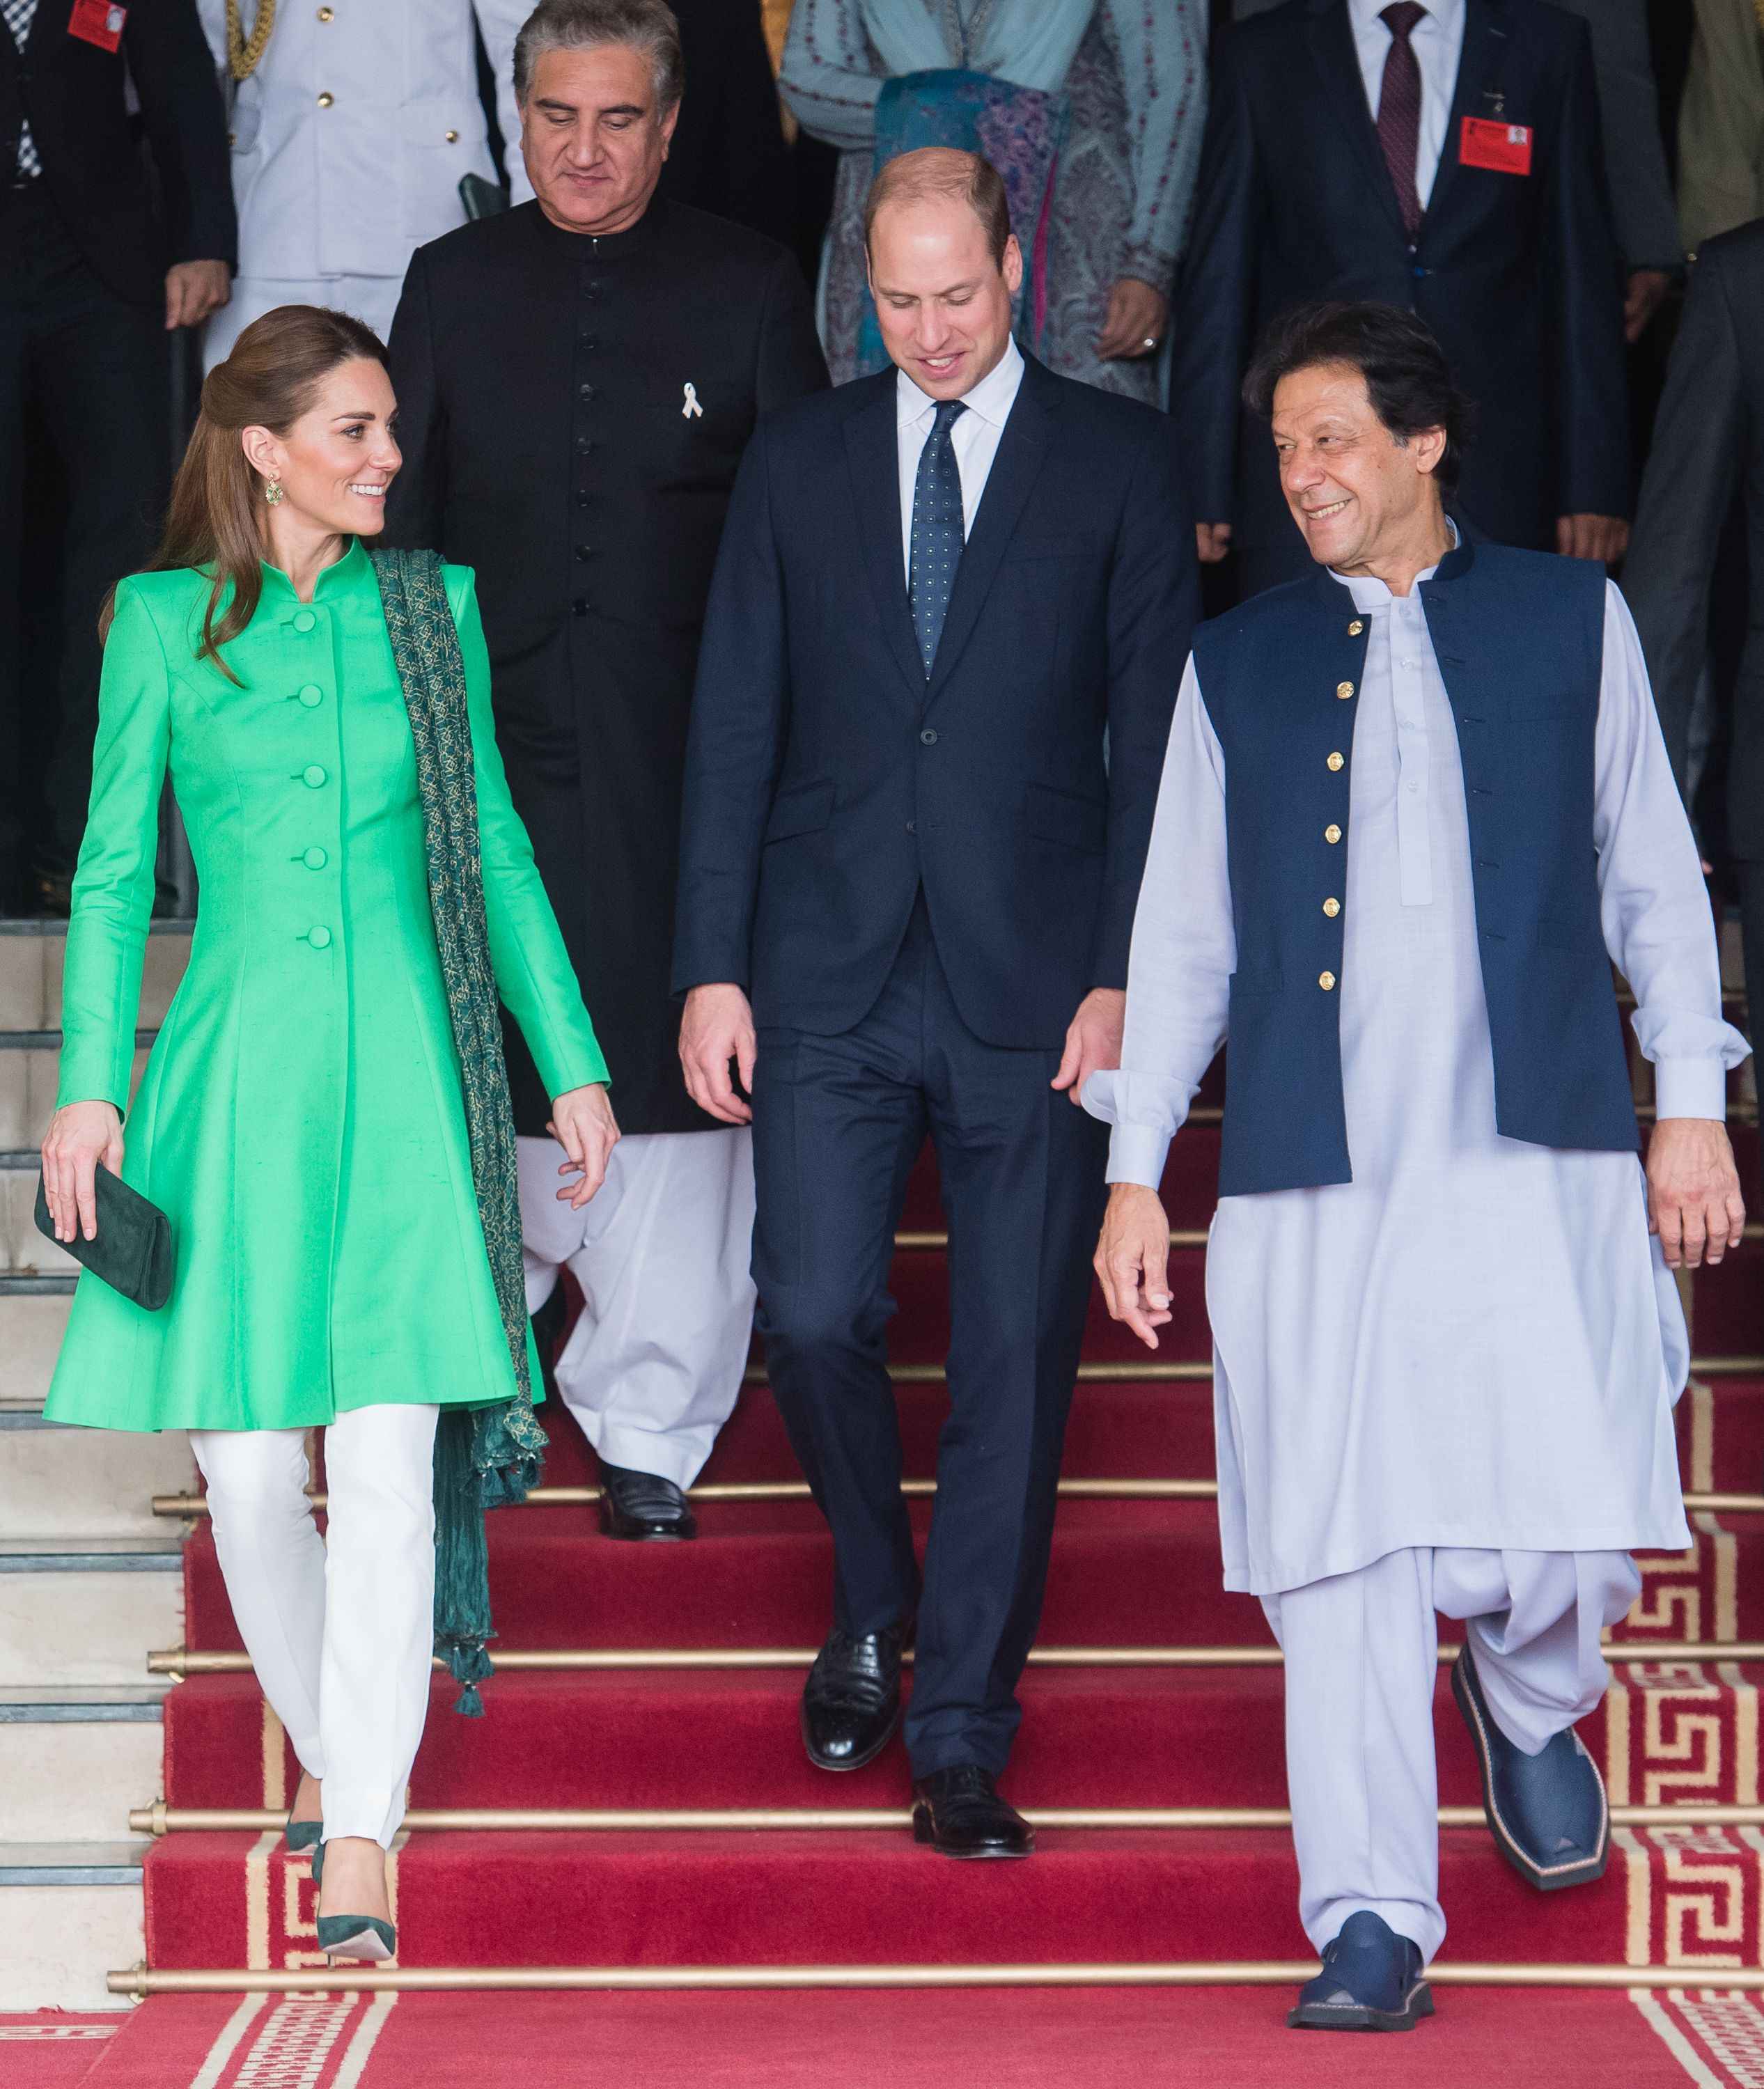 Prince William and Kate Middleton Will Follow in Diana's Footsteps on Day 4 of Their Tour of Pakistan